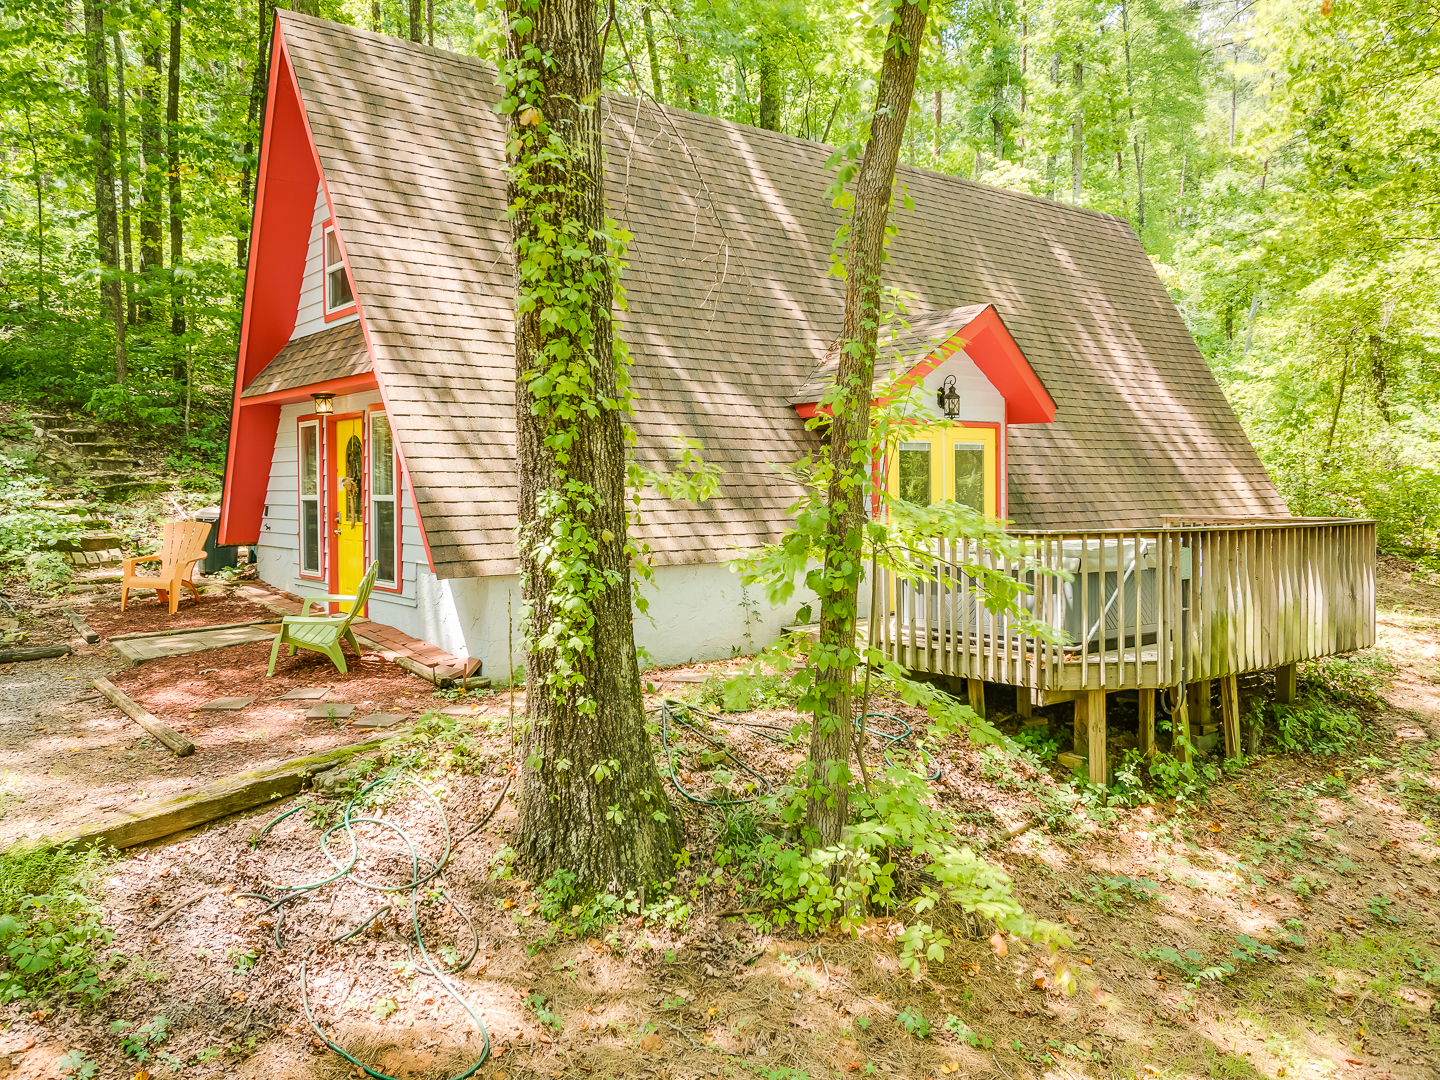 park cagle states mountain in chattanooga for cabin tn fall cabins original creek dunlap rent united rooms near tennessee falls